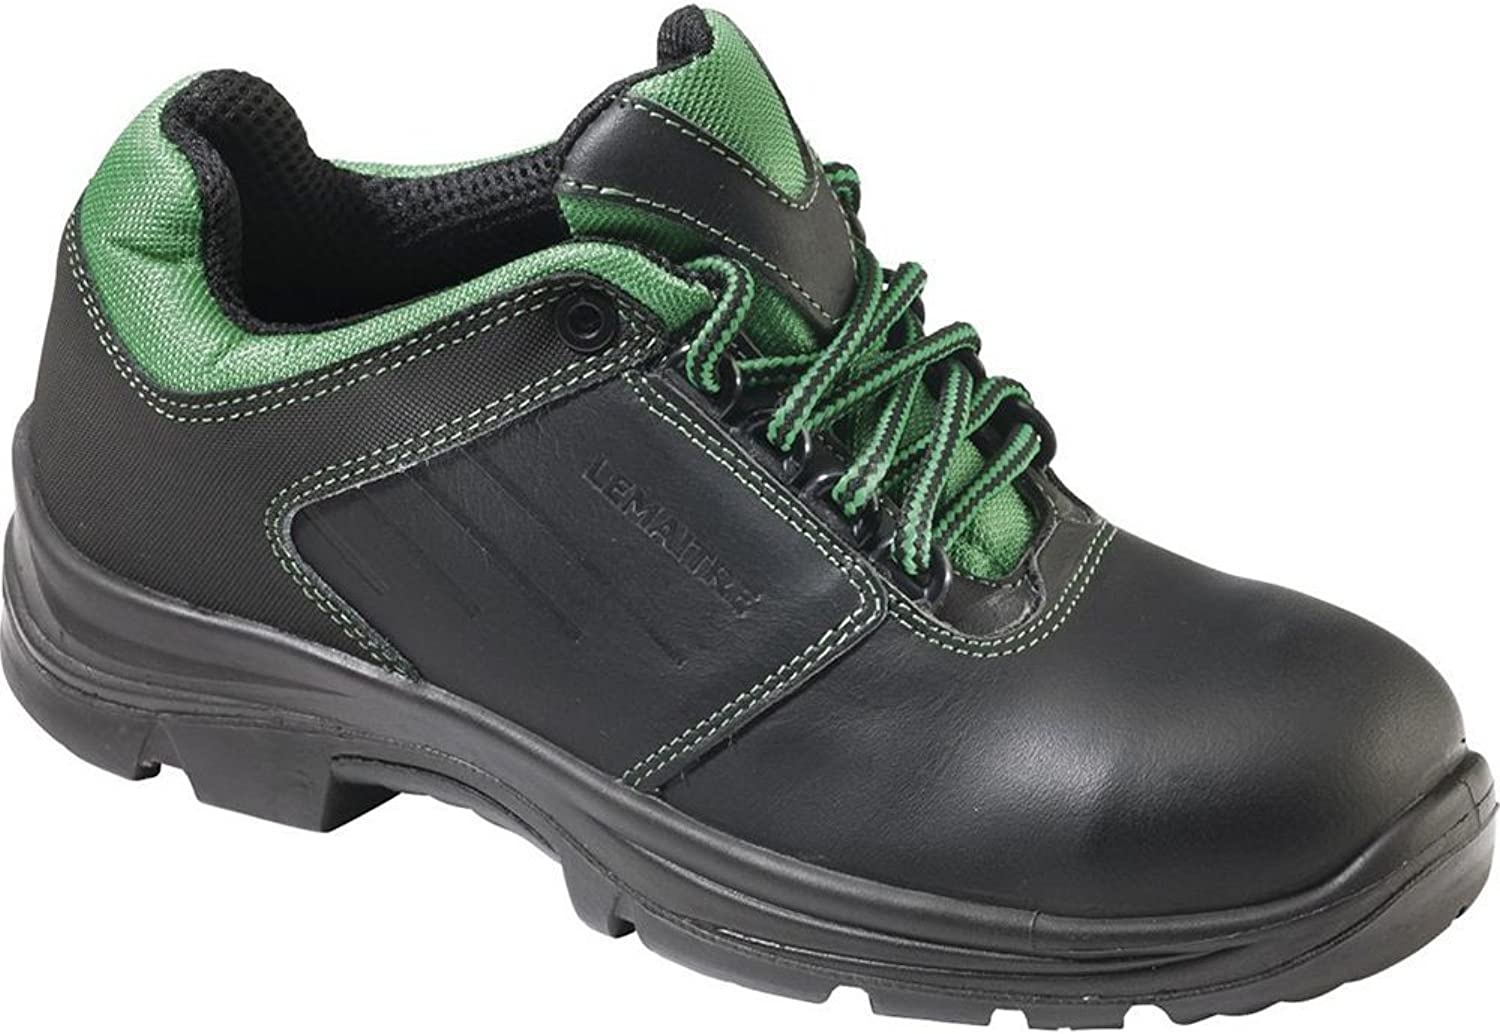 Lemaitre 113435 Size 35 S1P Blacktop+ Safety shoes